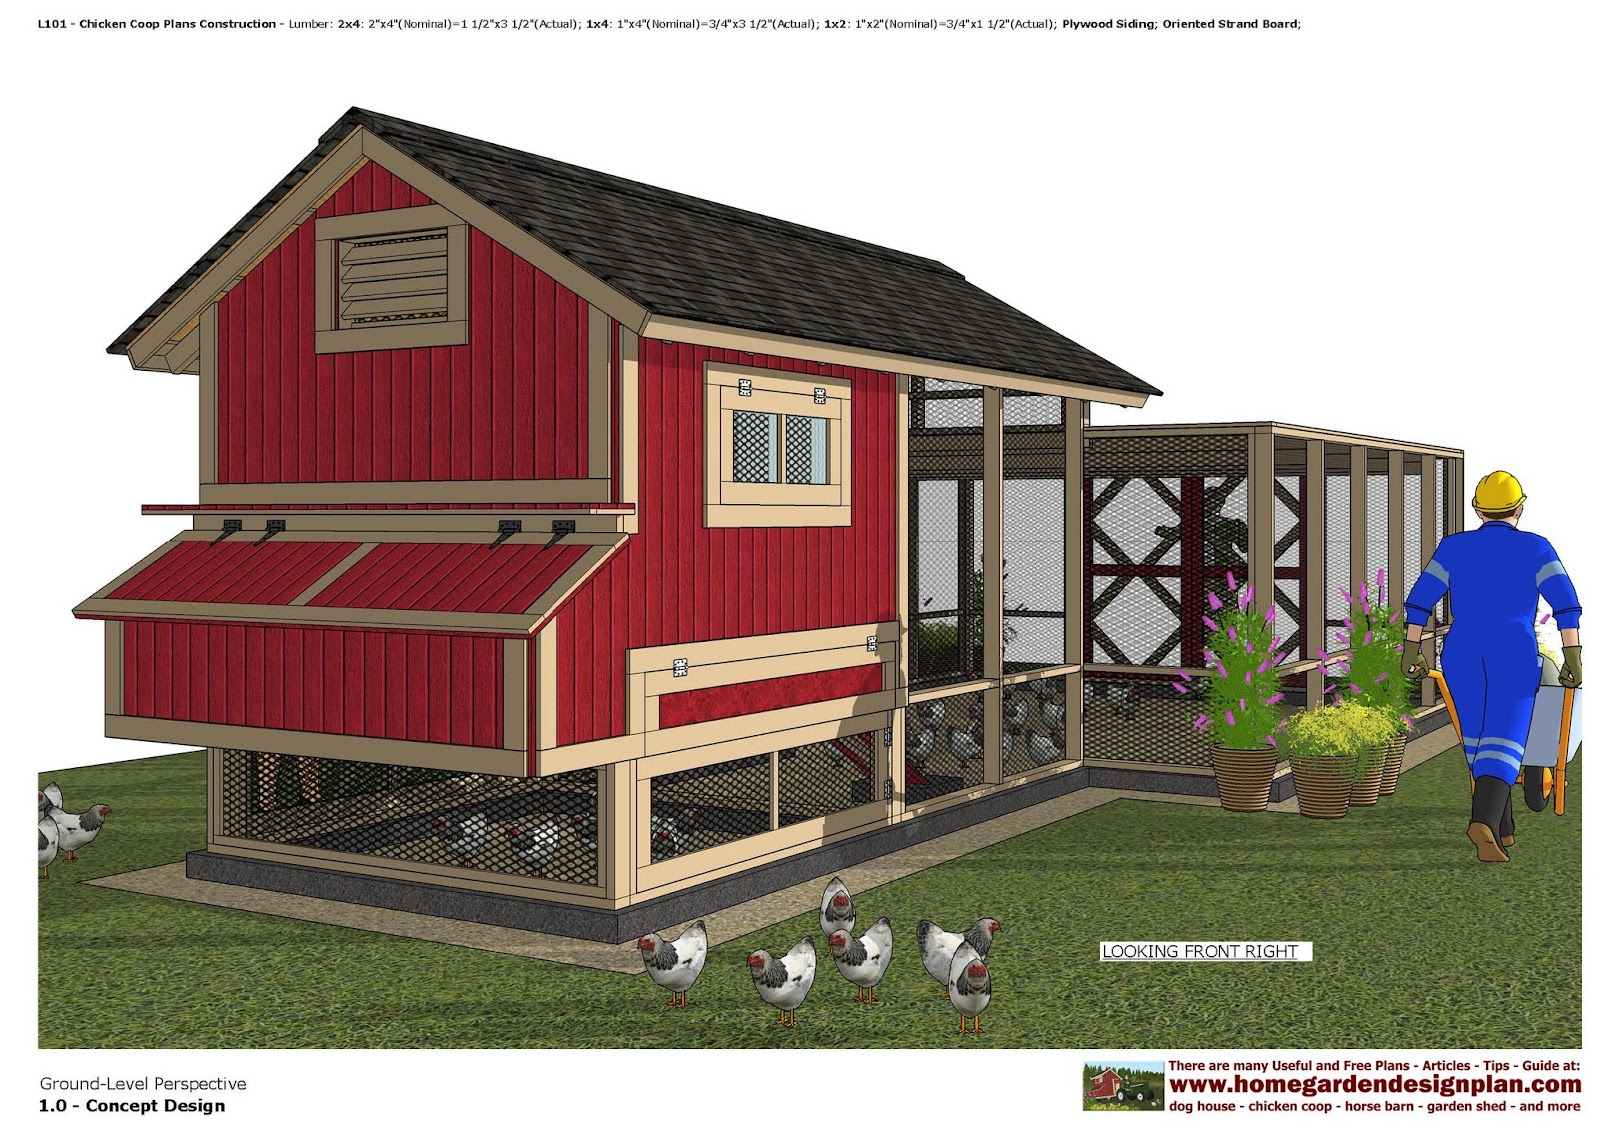 Home garden plans l101 chicken coop plans construction for Plans for a chicken coop for 12 chickens